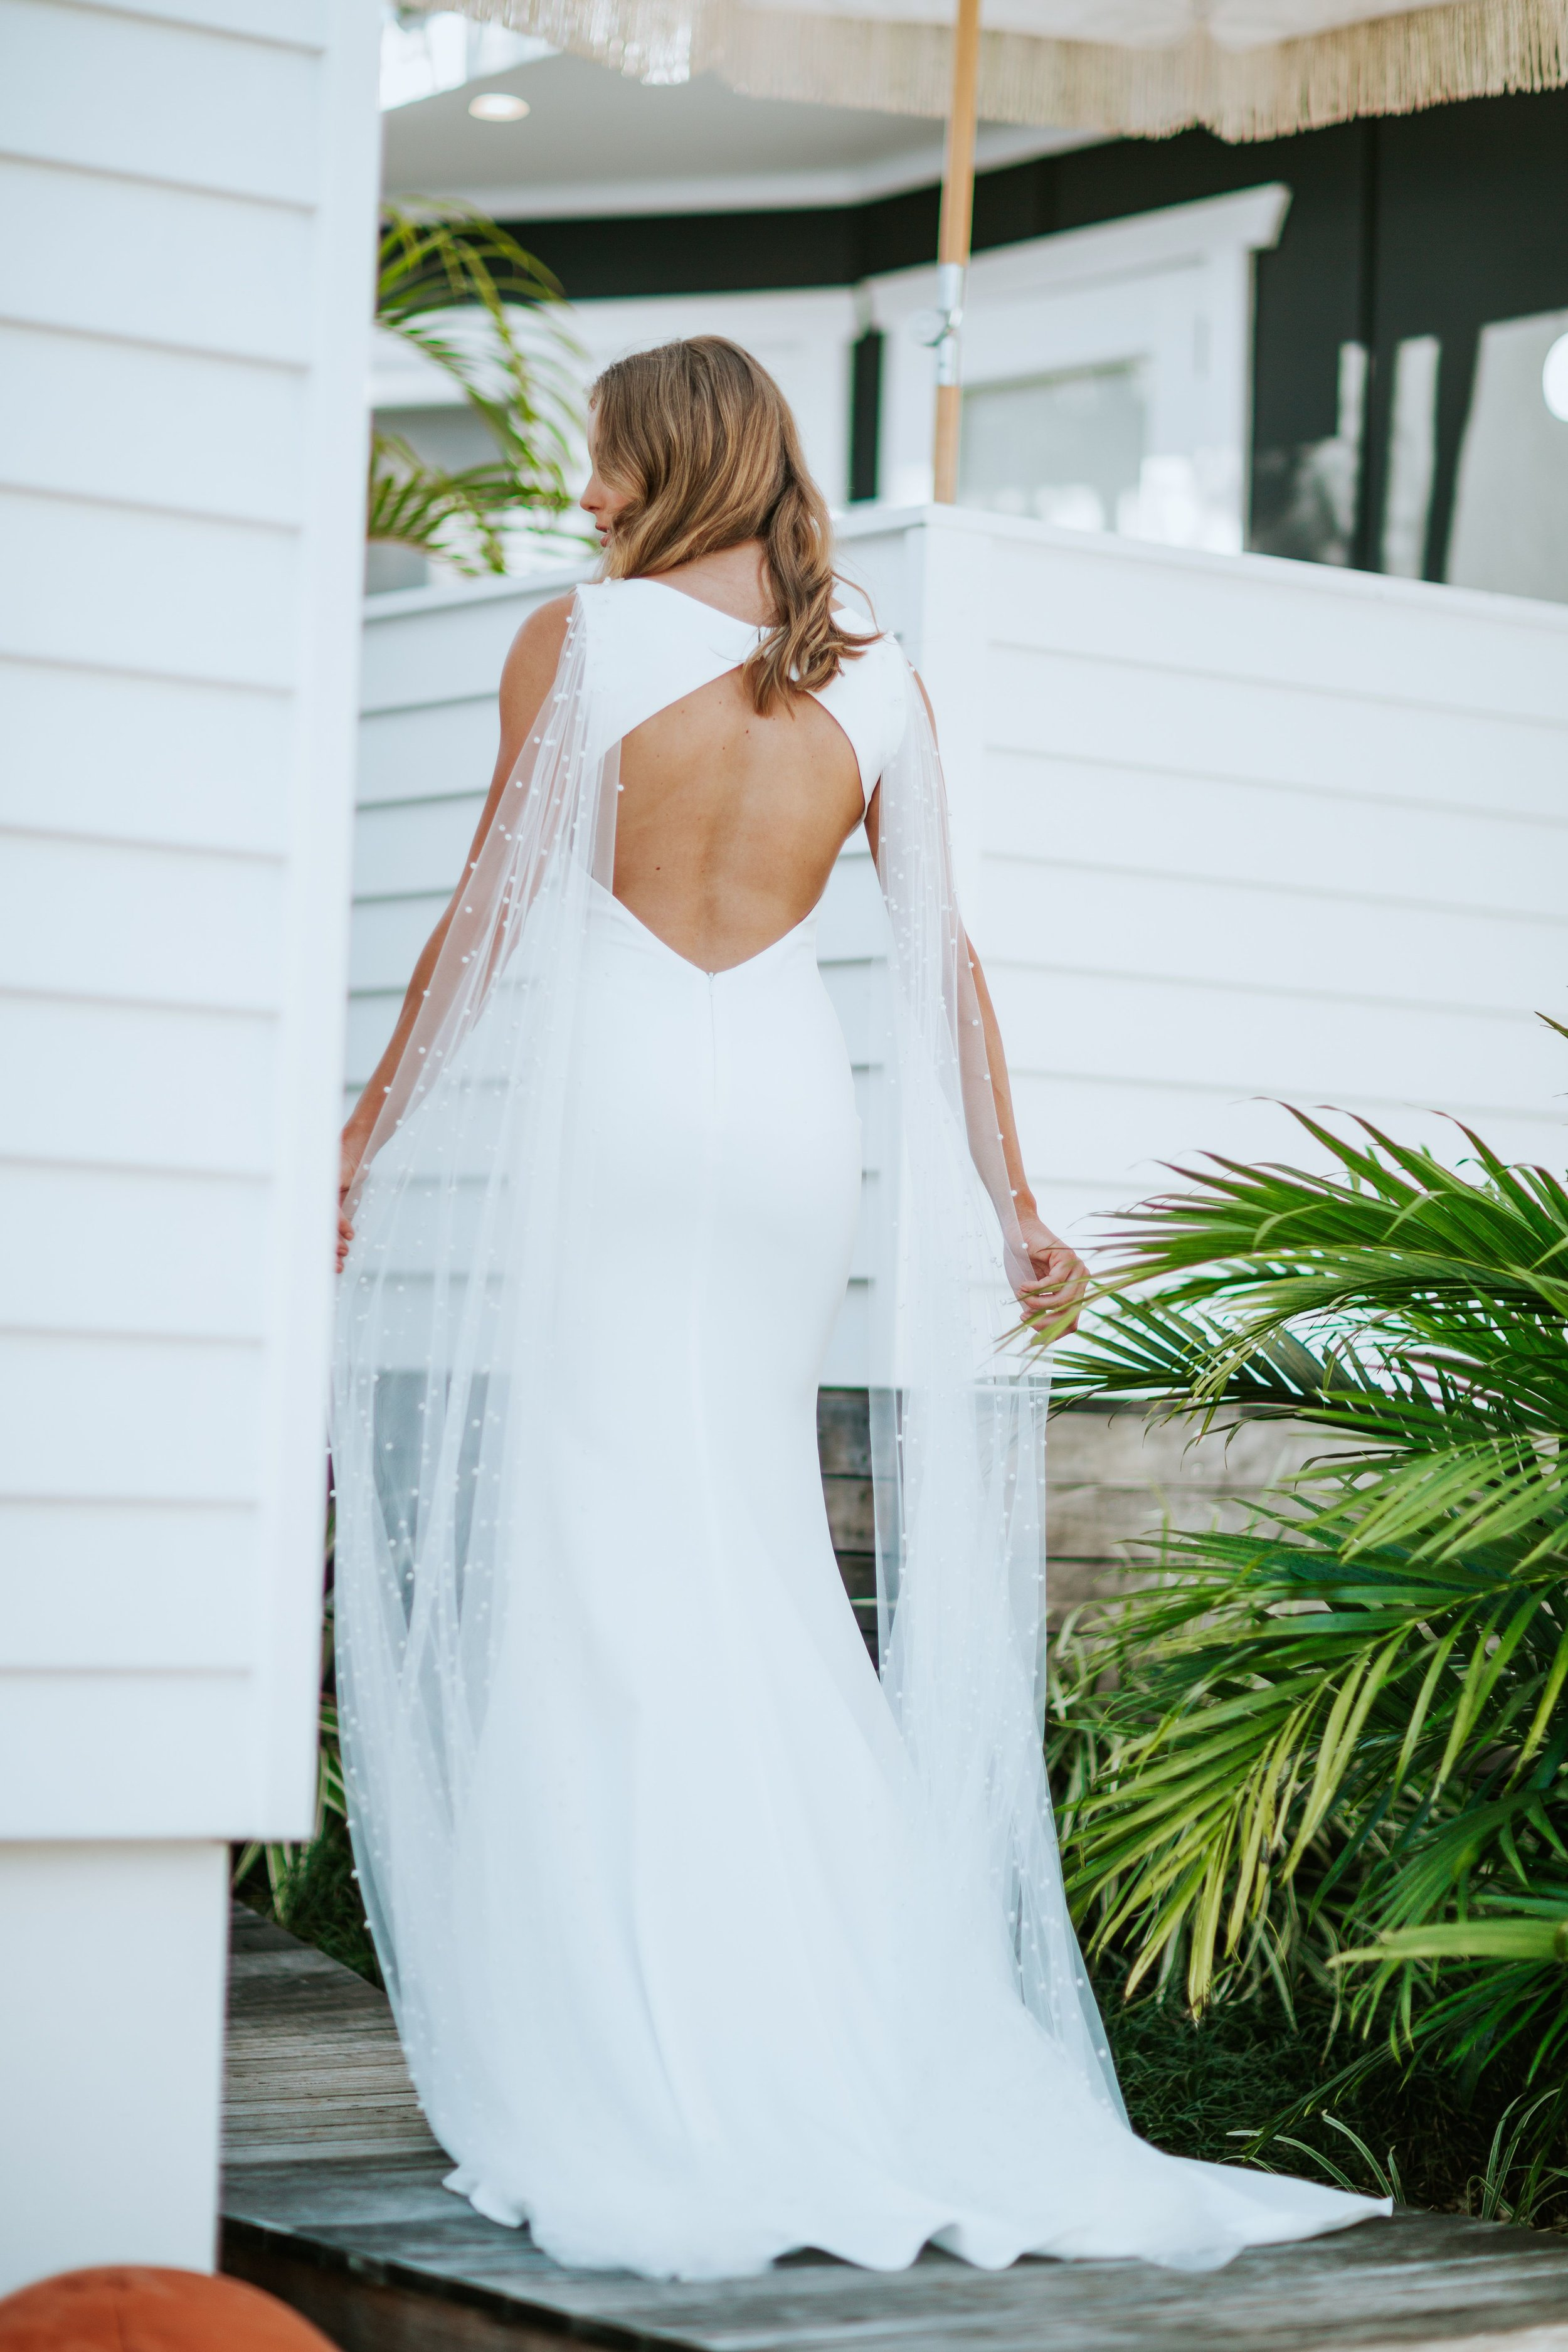 PORTUGAL was designed to cater to the versatile, modern minimalistic bride who wants it all. Her desires are ever-changing – as is this unique gown. This clean matte French crepe silhouette has multiple accessory pieces that can be added for different looks (detachable pearls, veil capes or lace trim)